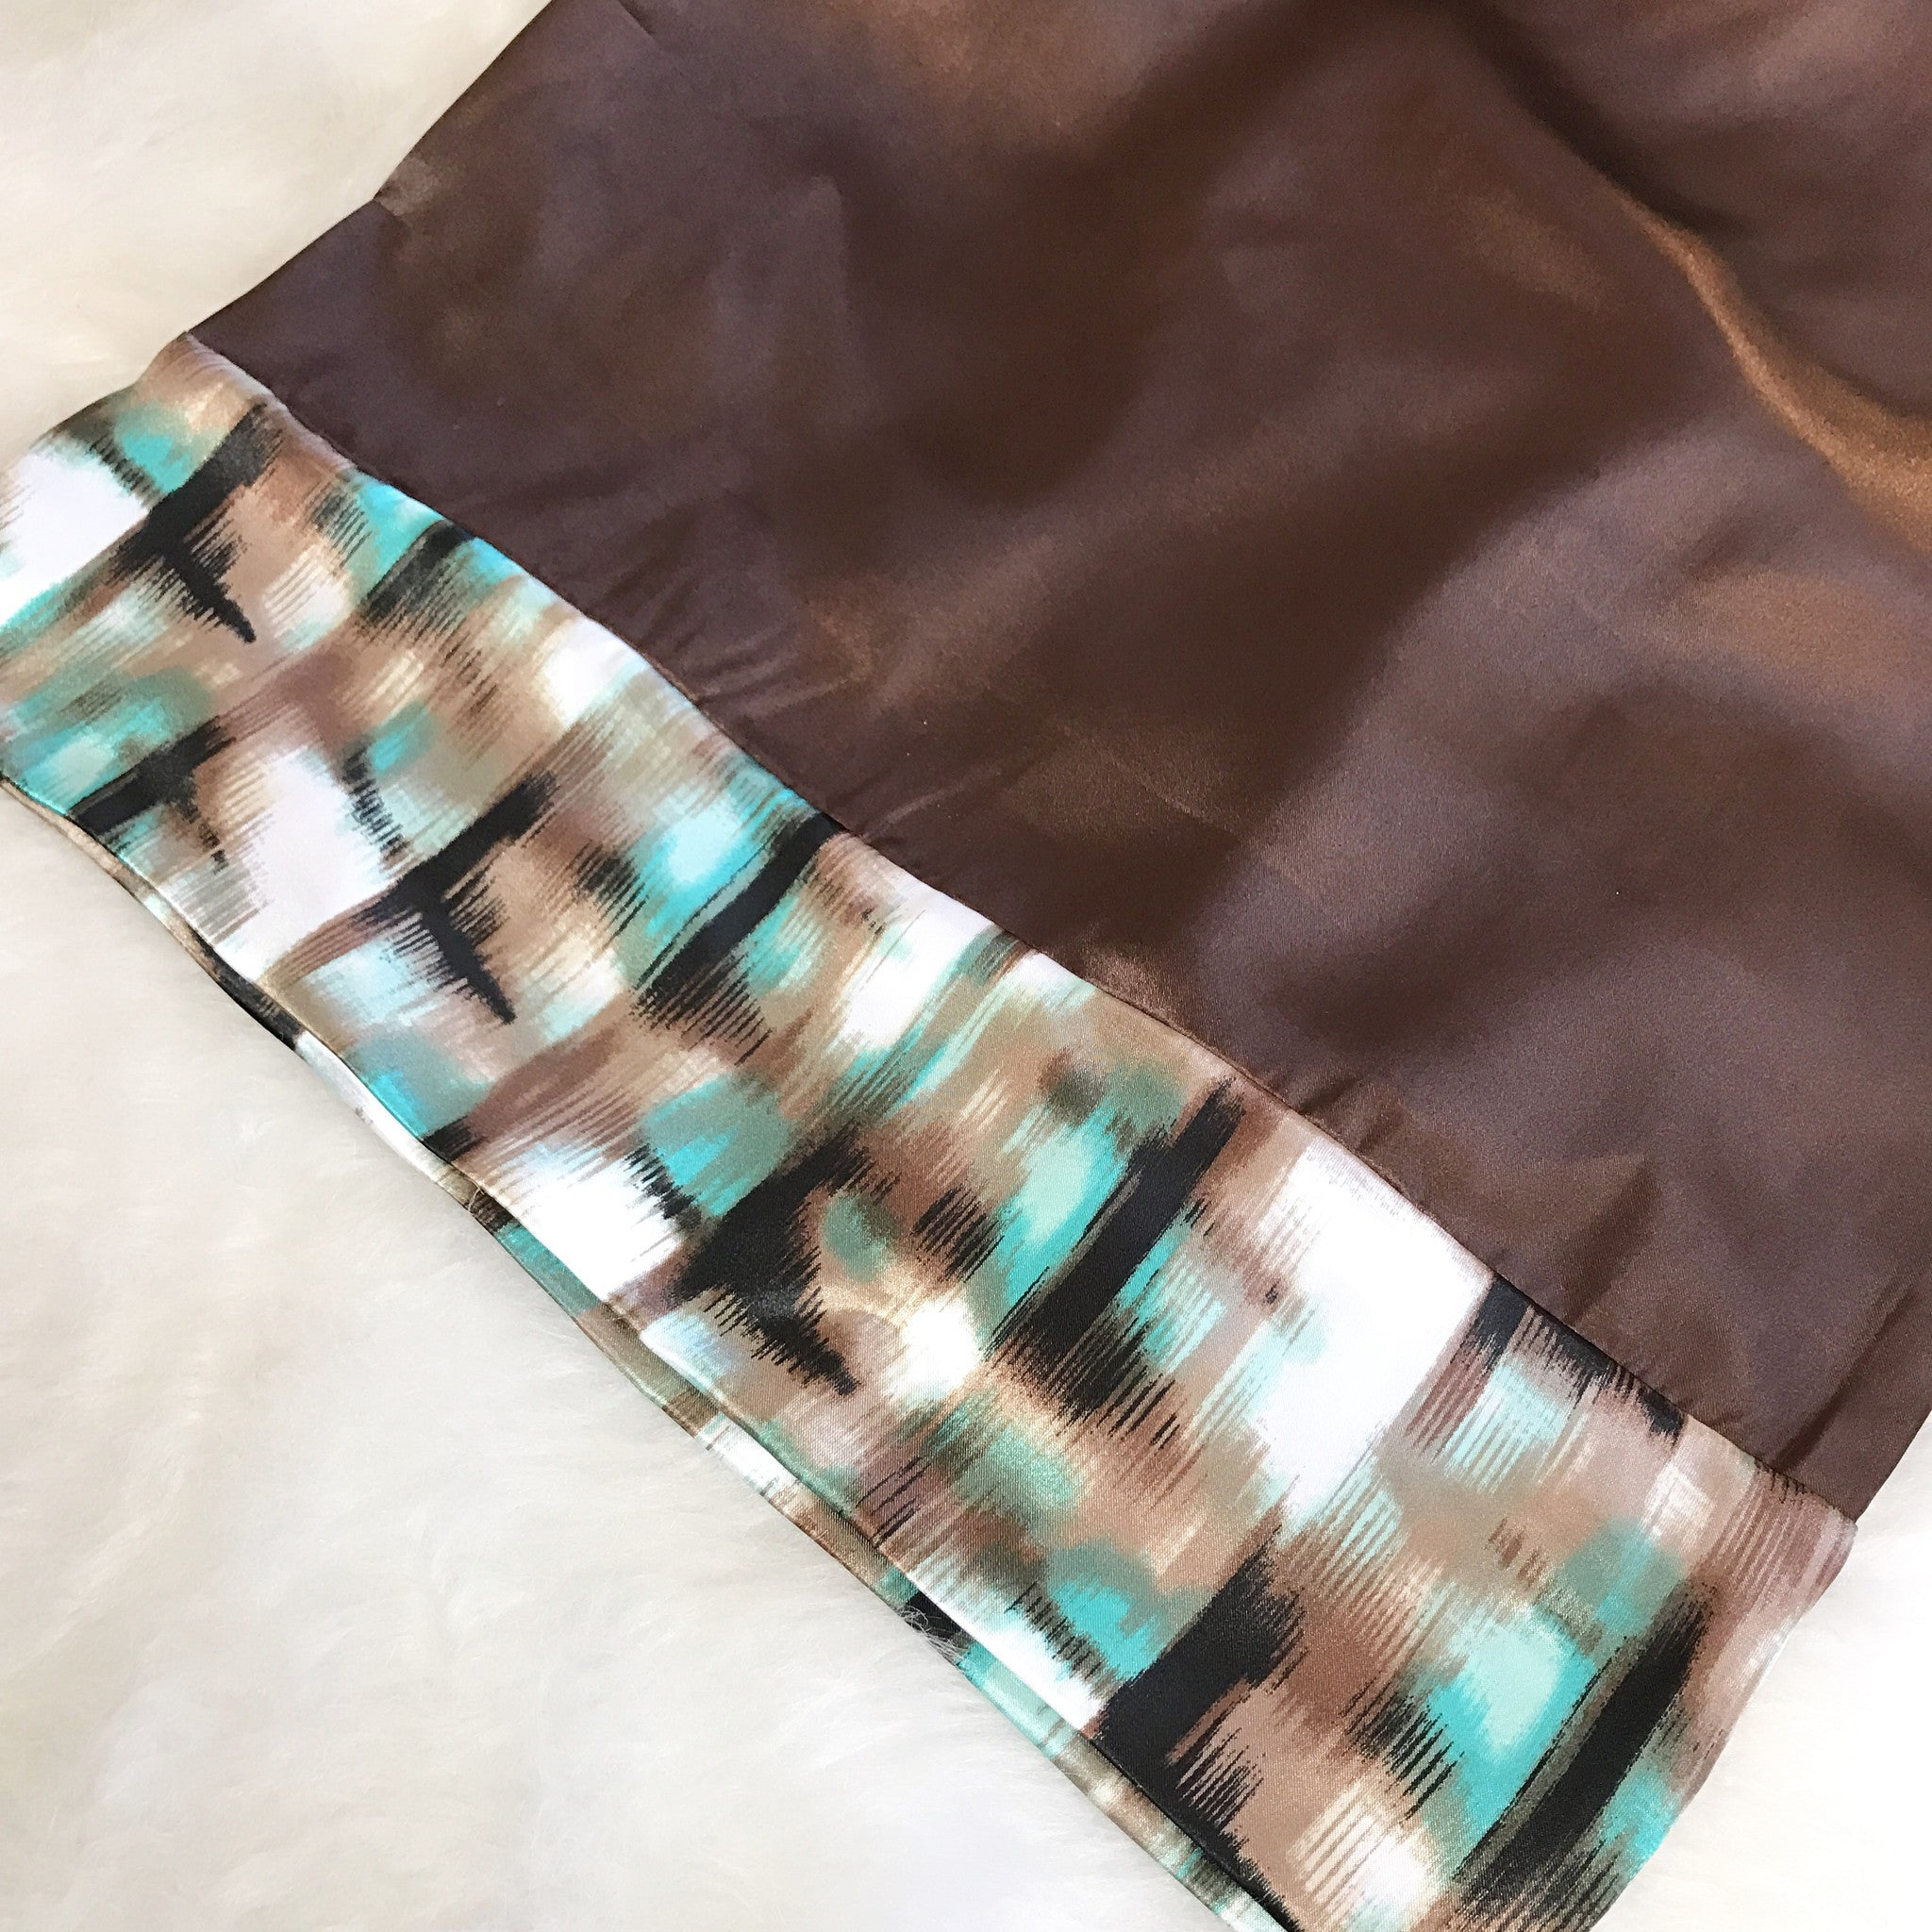 Teal & Chocolate Silhouette pillowcase